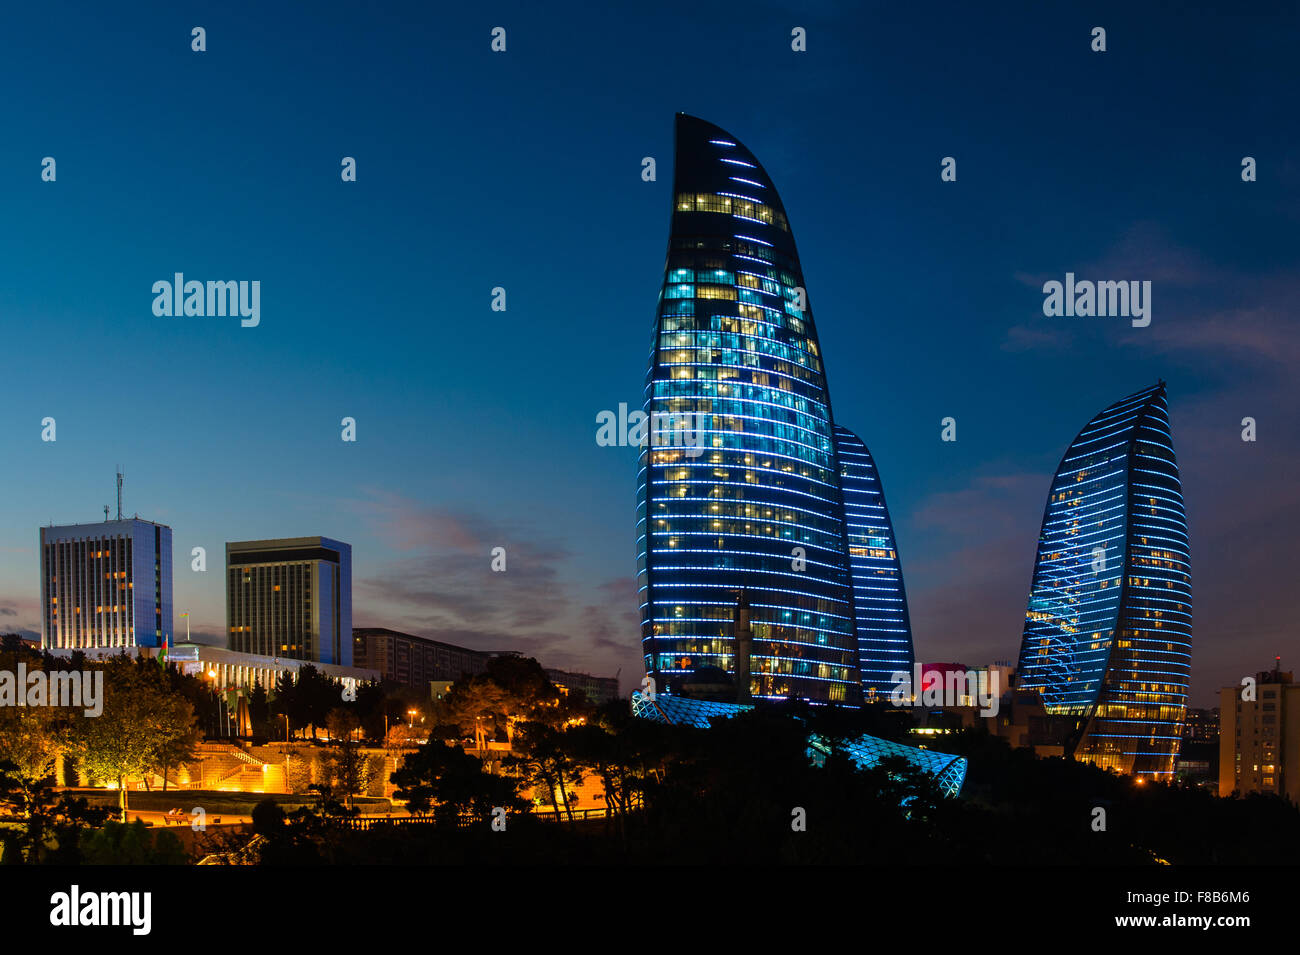 Flame Towers are new skyscrapers in Baku, Azerbaijan Stock Photo